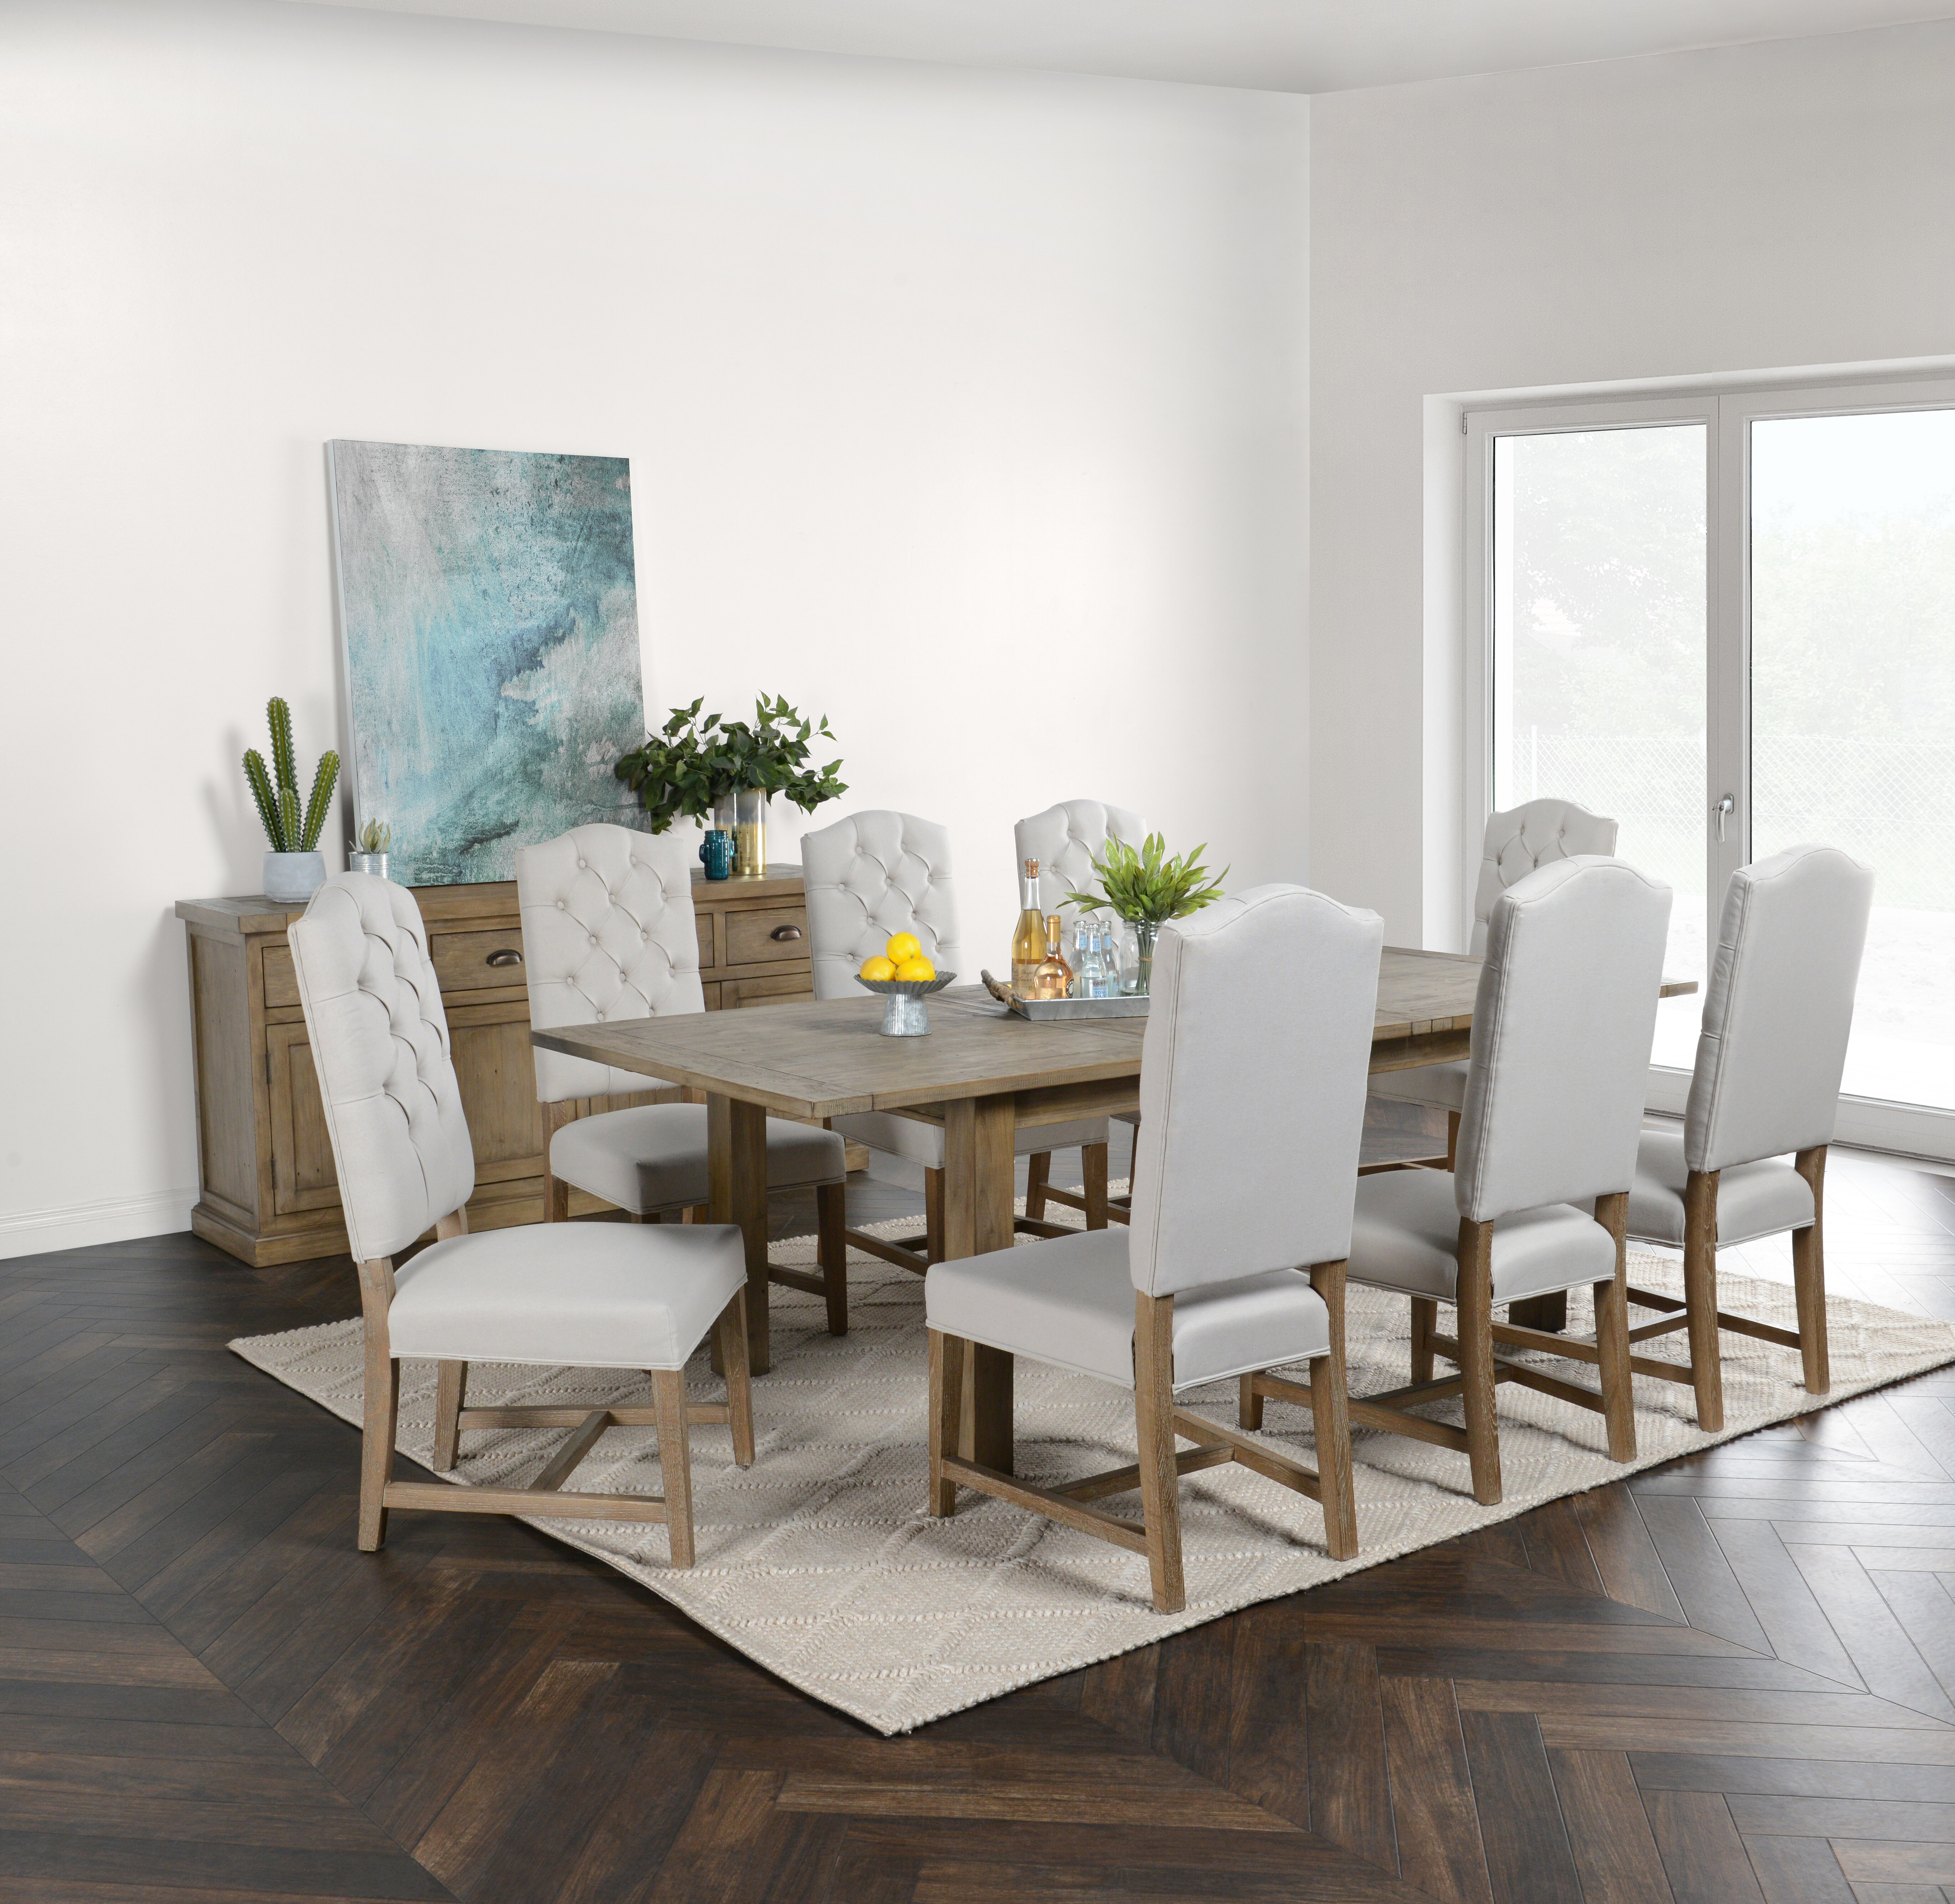 8 Seat Rustic Farmhouse Kitchen Dining Tables You Ll Love In 2021 Wayfair